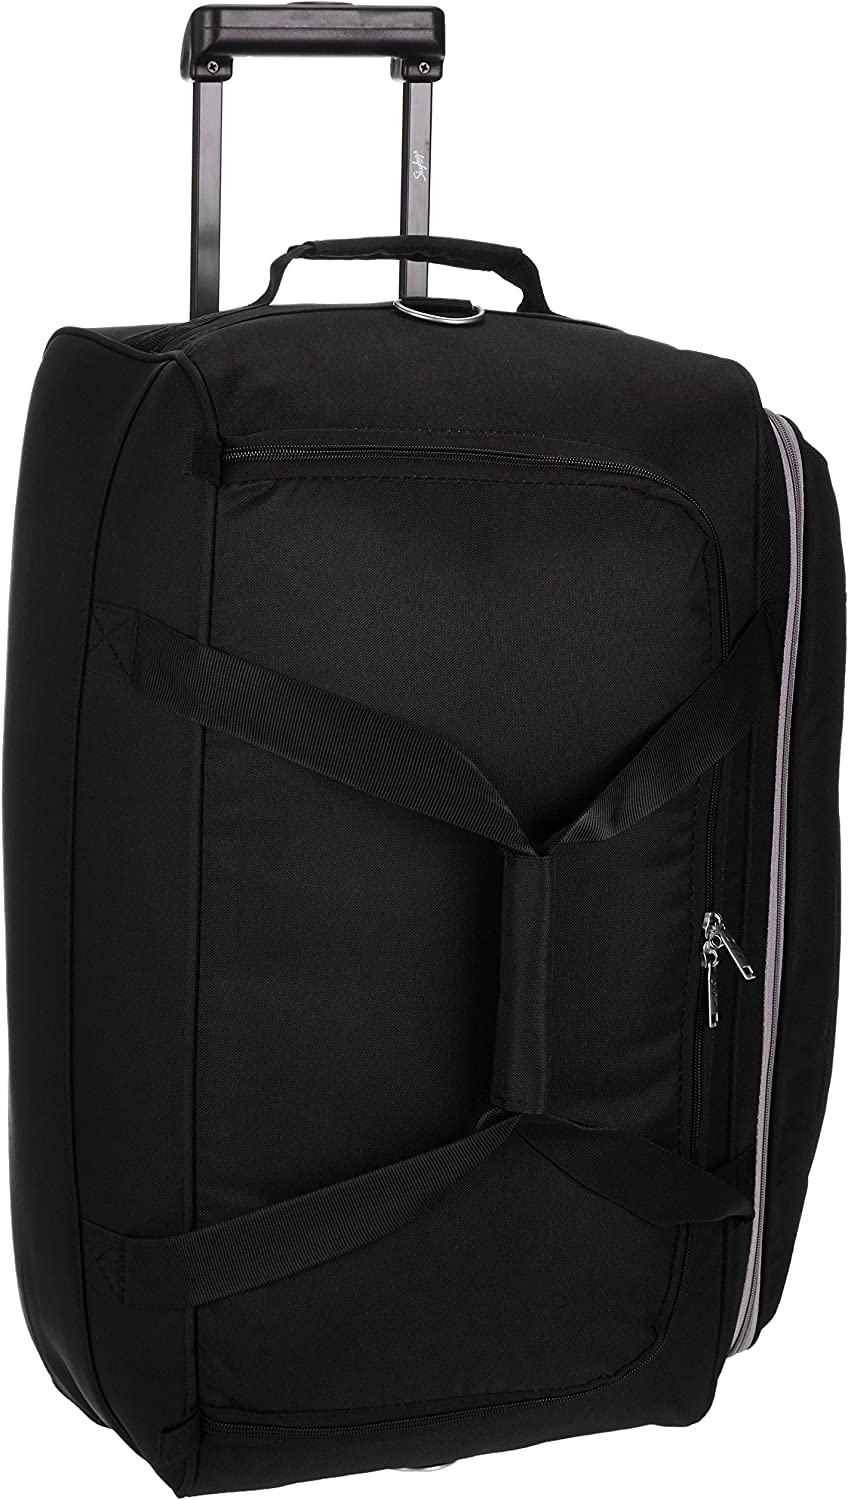 Skybags Cardiff Polyester 62 cms Black Travel Duffle (DFTCAR62BLK)